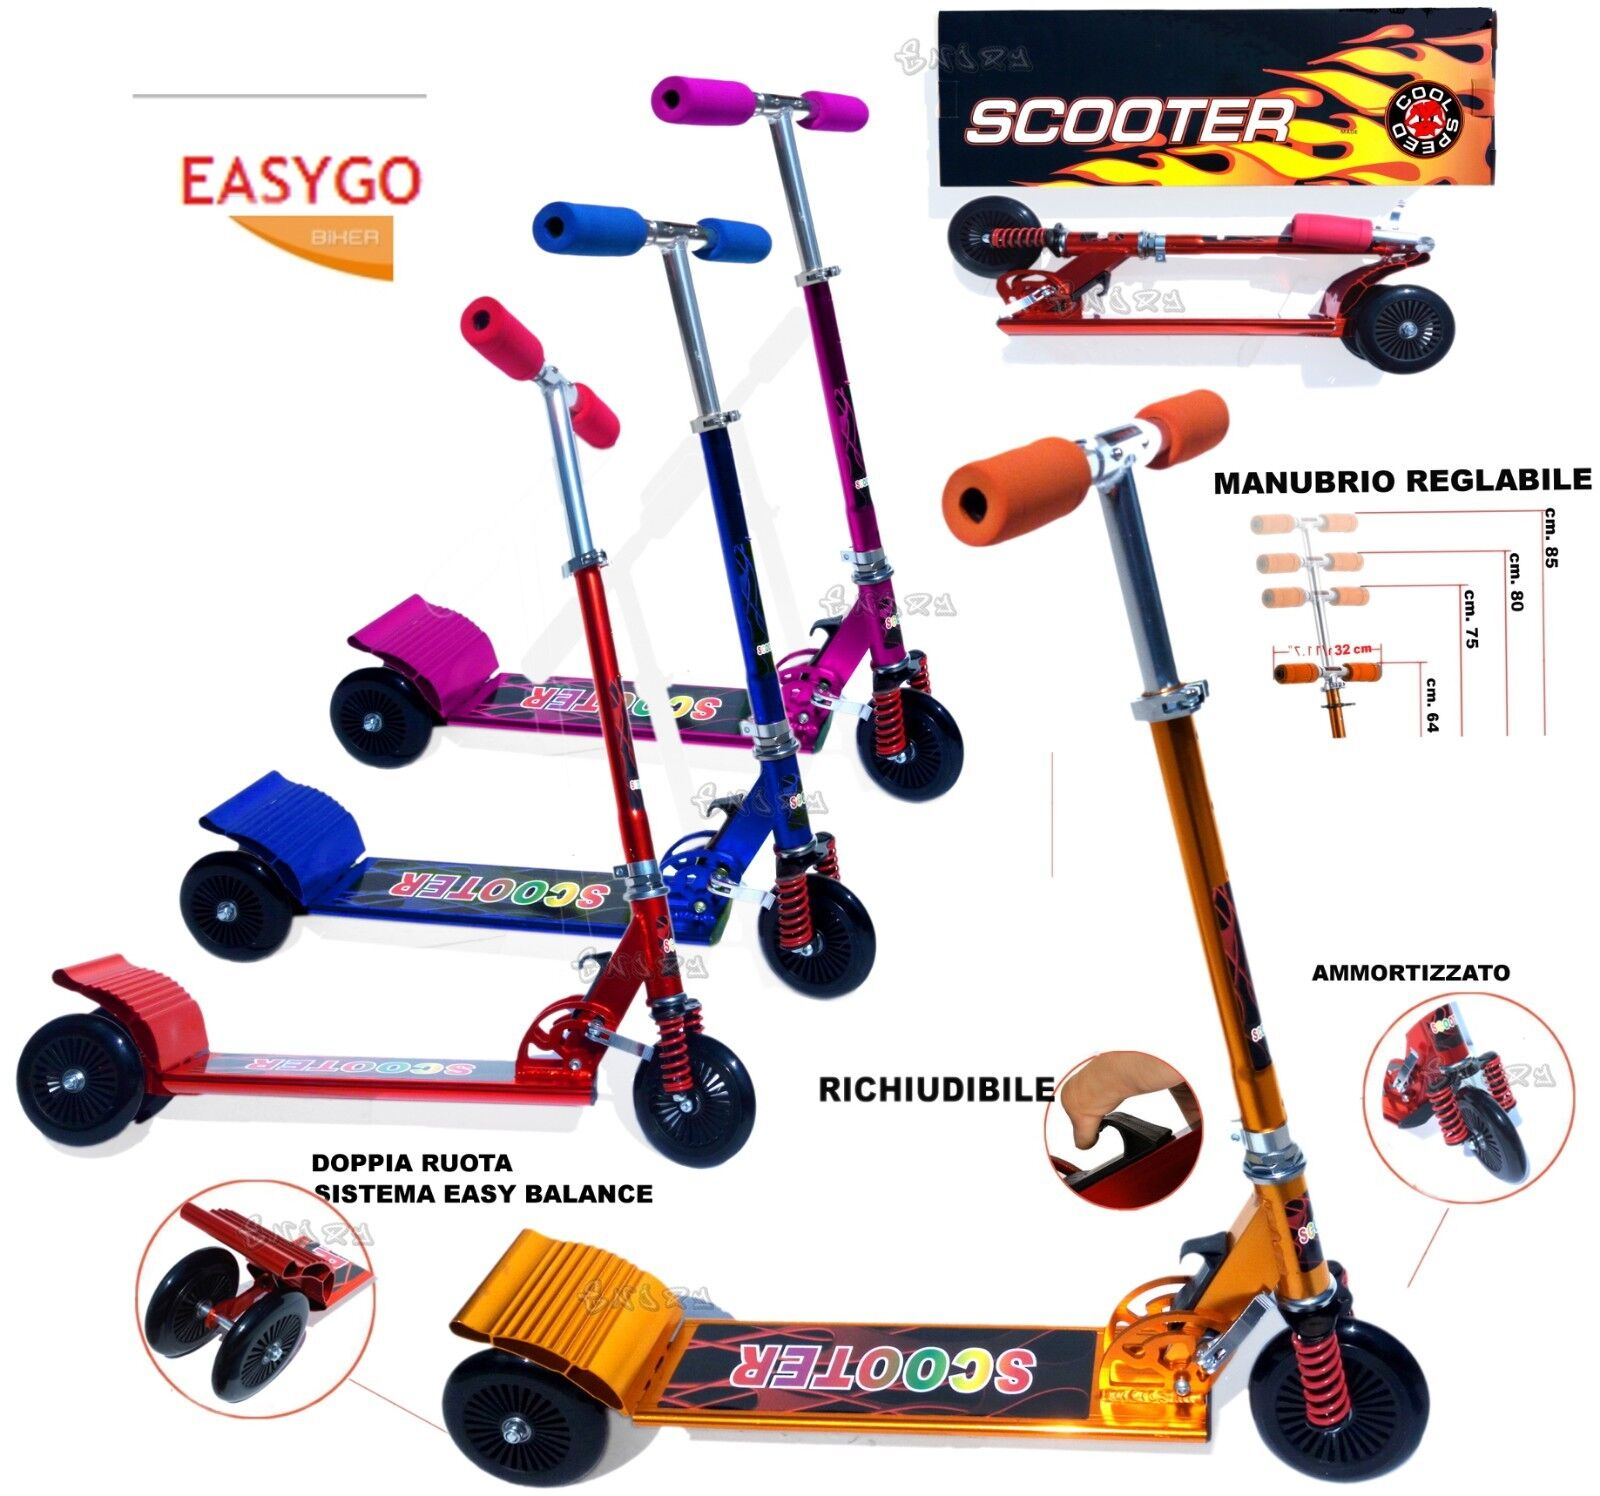 SCOOTER ALUMINUM 3 wheels system TWIST BALANCE weight max 50 kg resealable